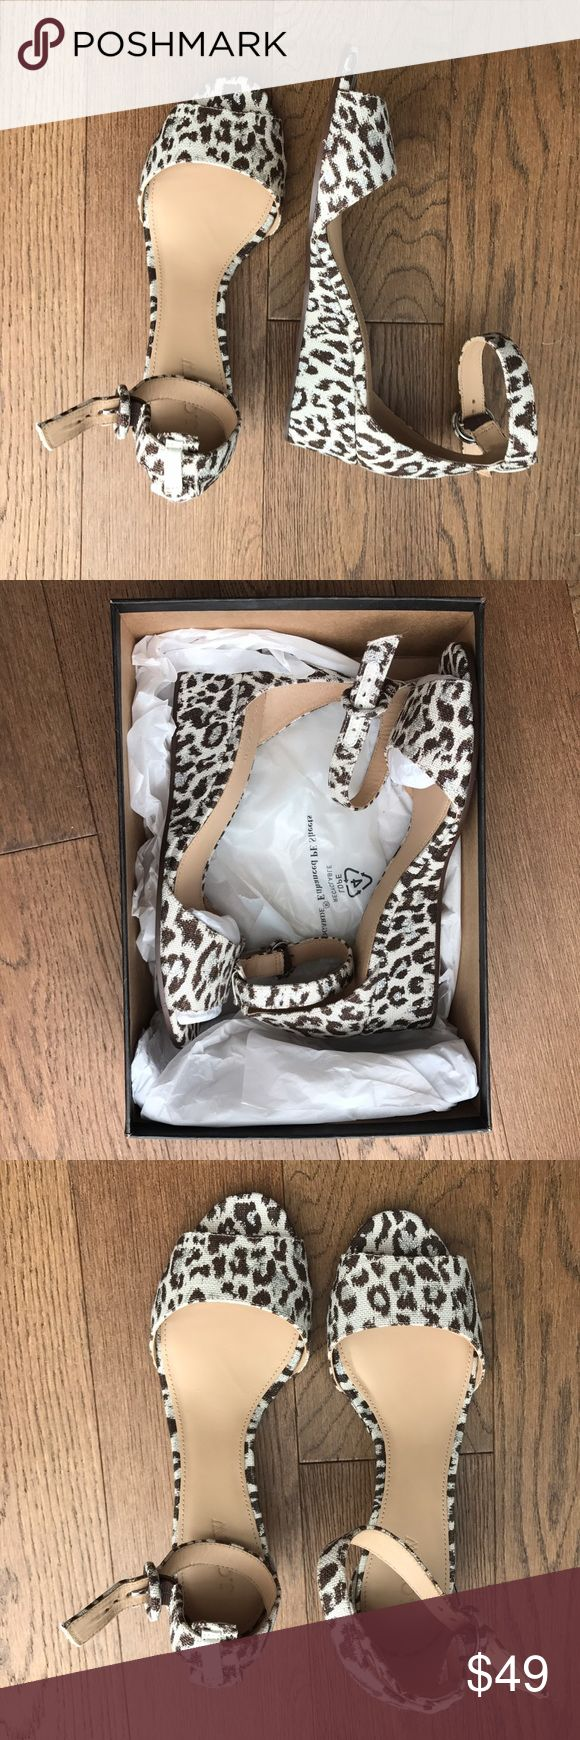 J Crew LEOPARD PRINT WEDGES sandals Ankle Strap Brand new, never worn J crew leopard print sandals set on a low wedge for ideal leg lift and splashed with metallic shimmer. Perfect with white jeans! Comes with original box. J. Crew Shoes Sandals